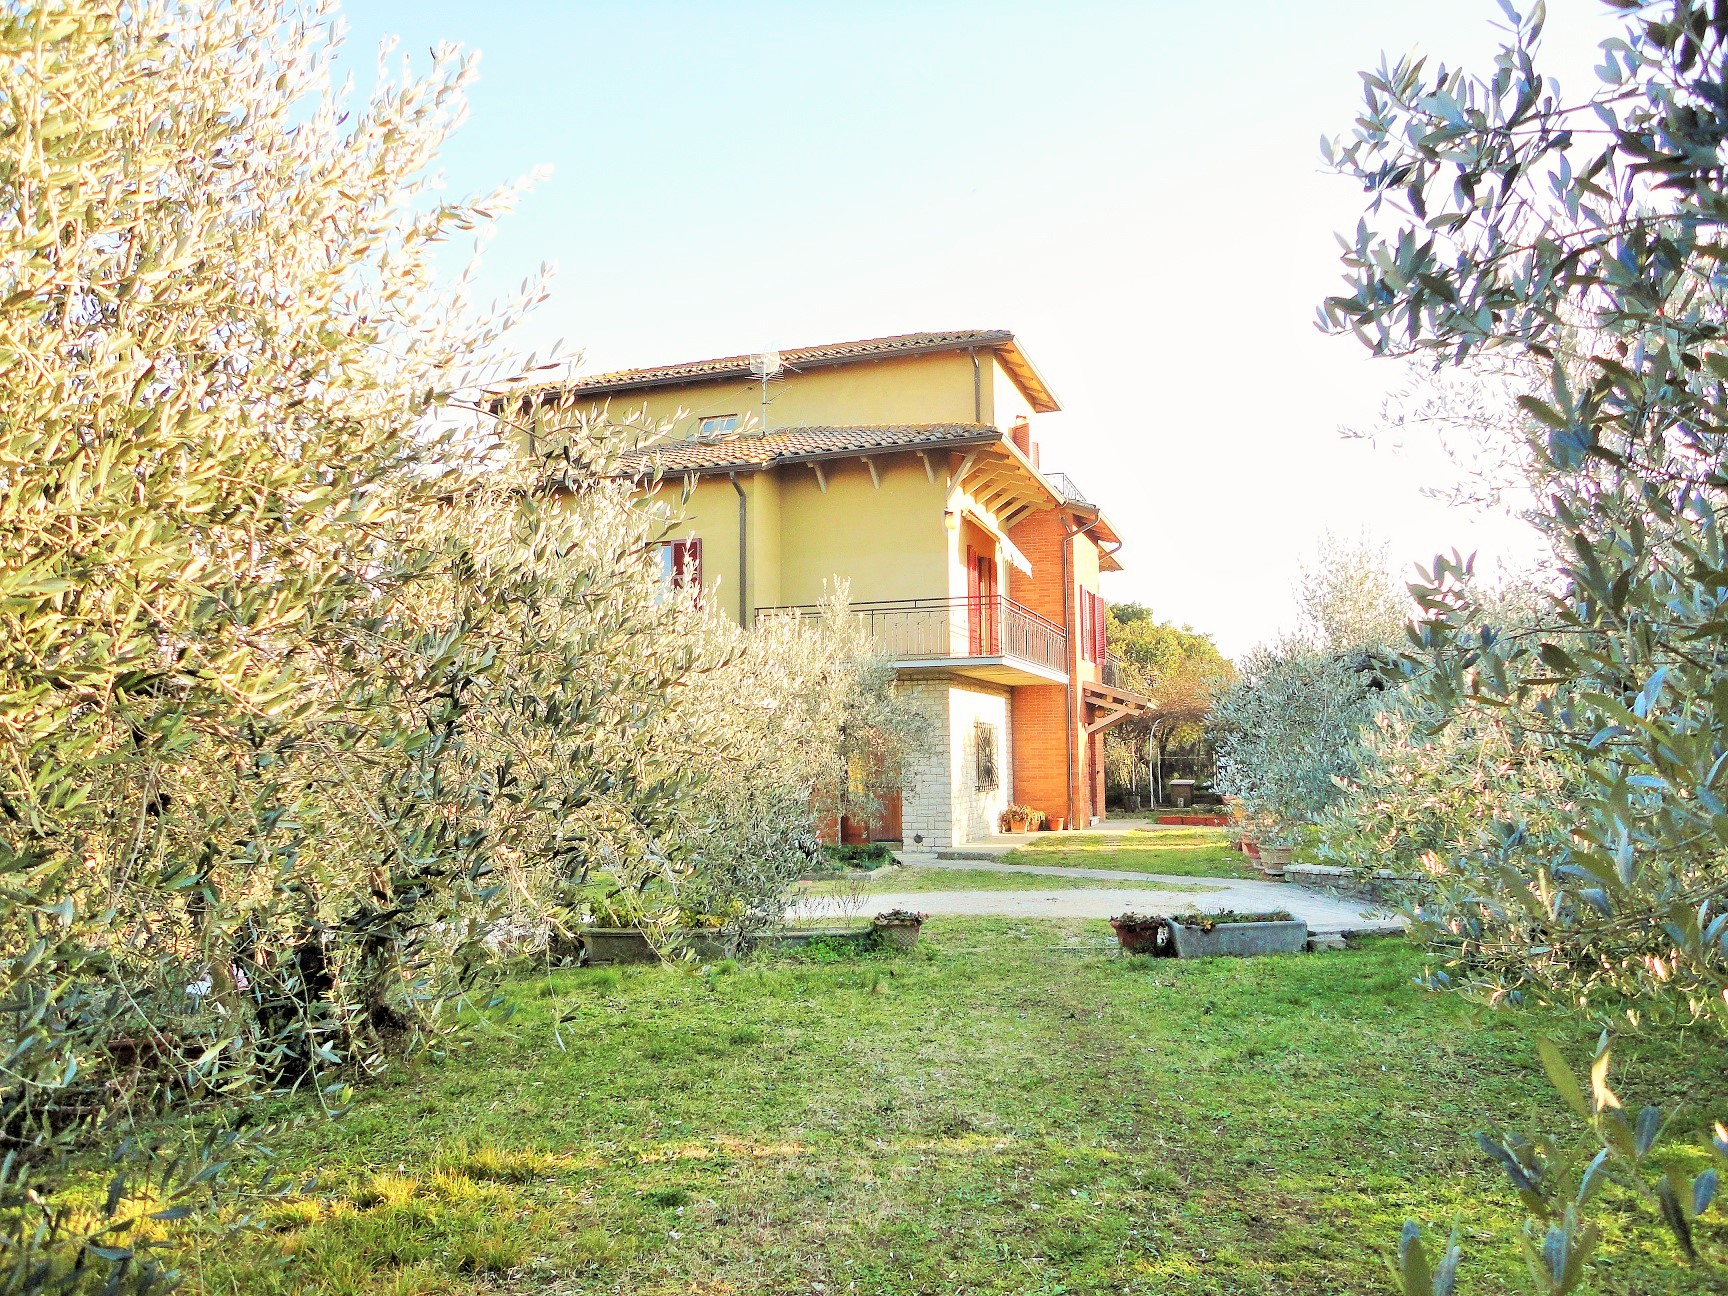 Villa for sale in Todi in a hamlet